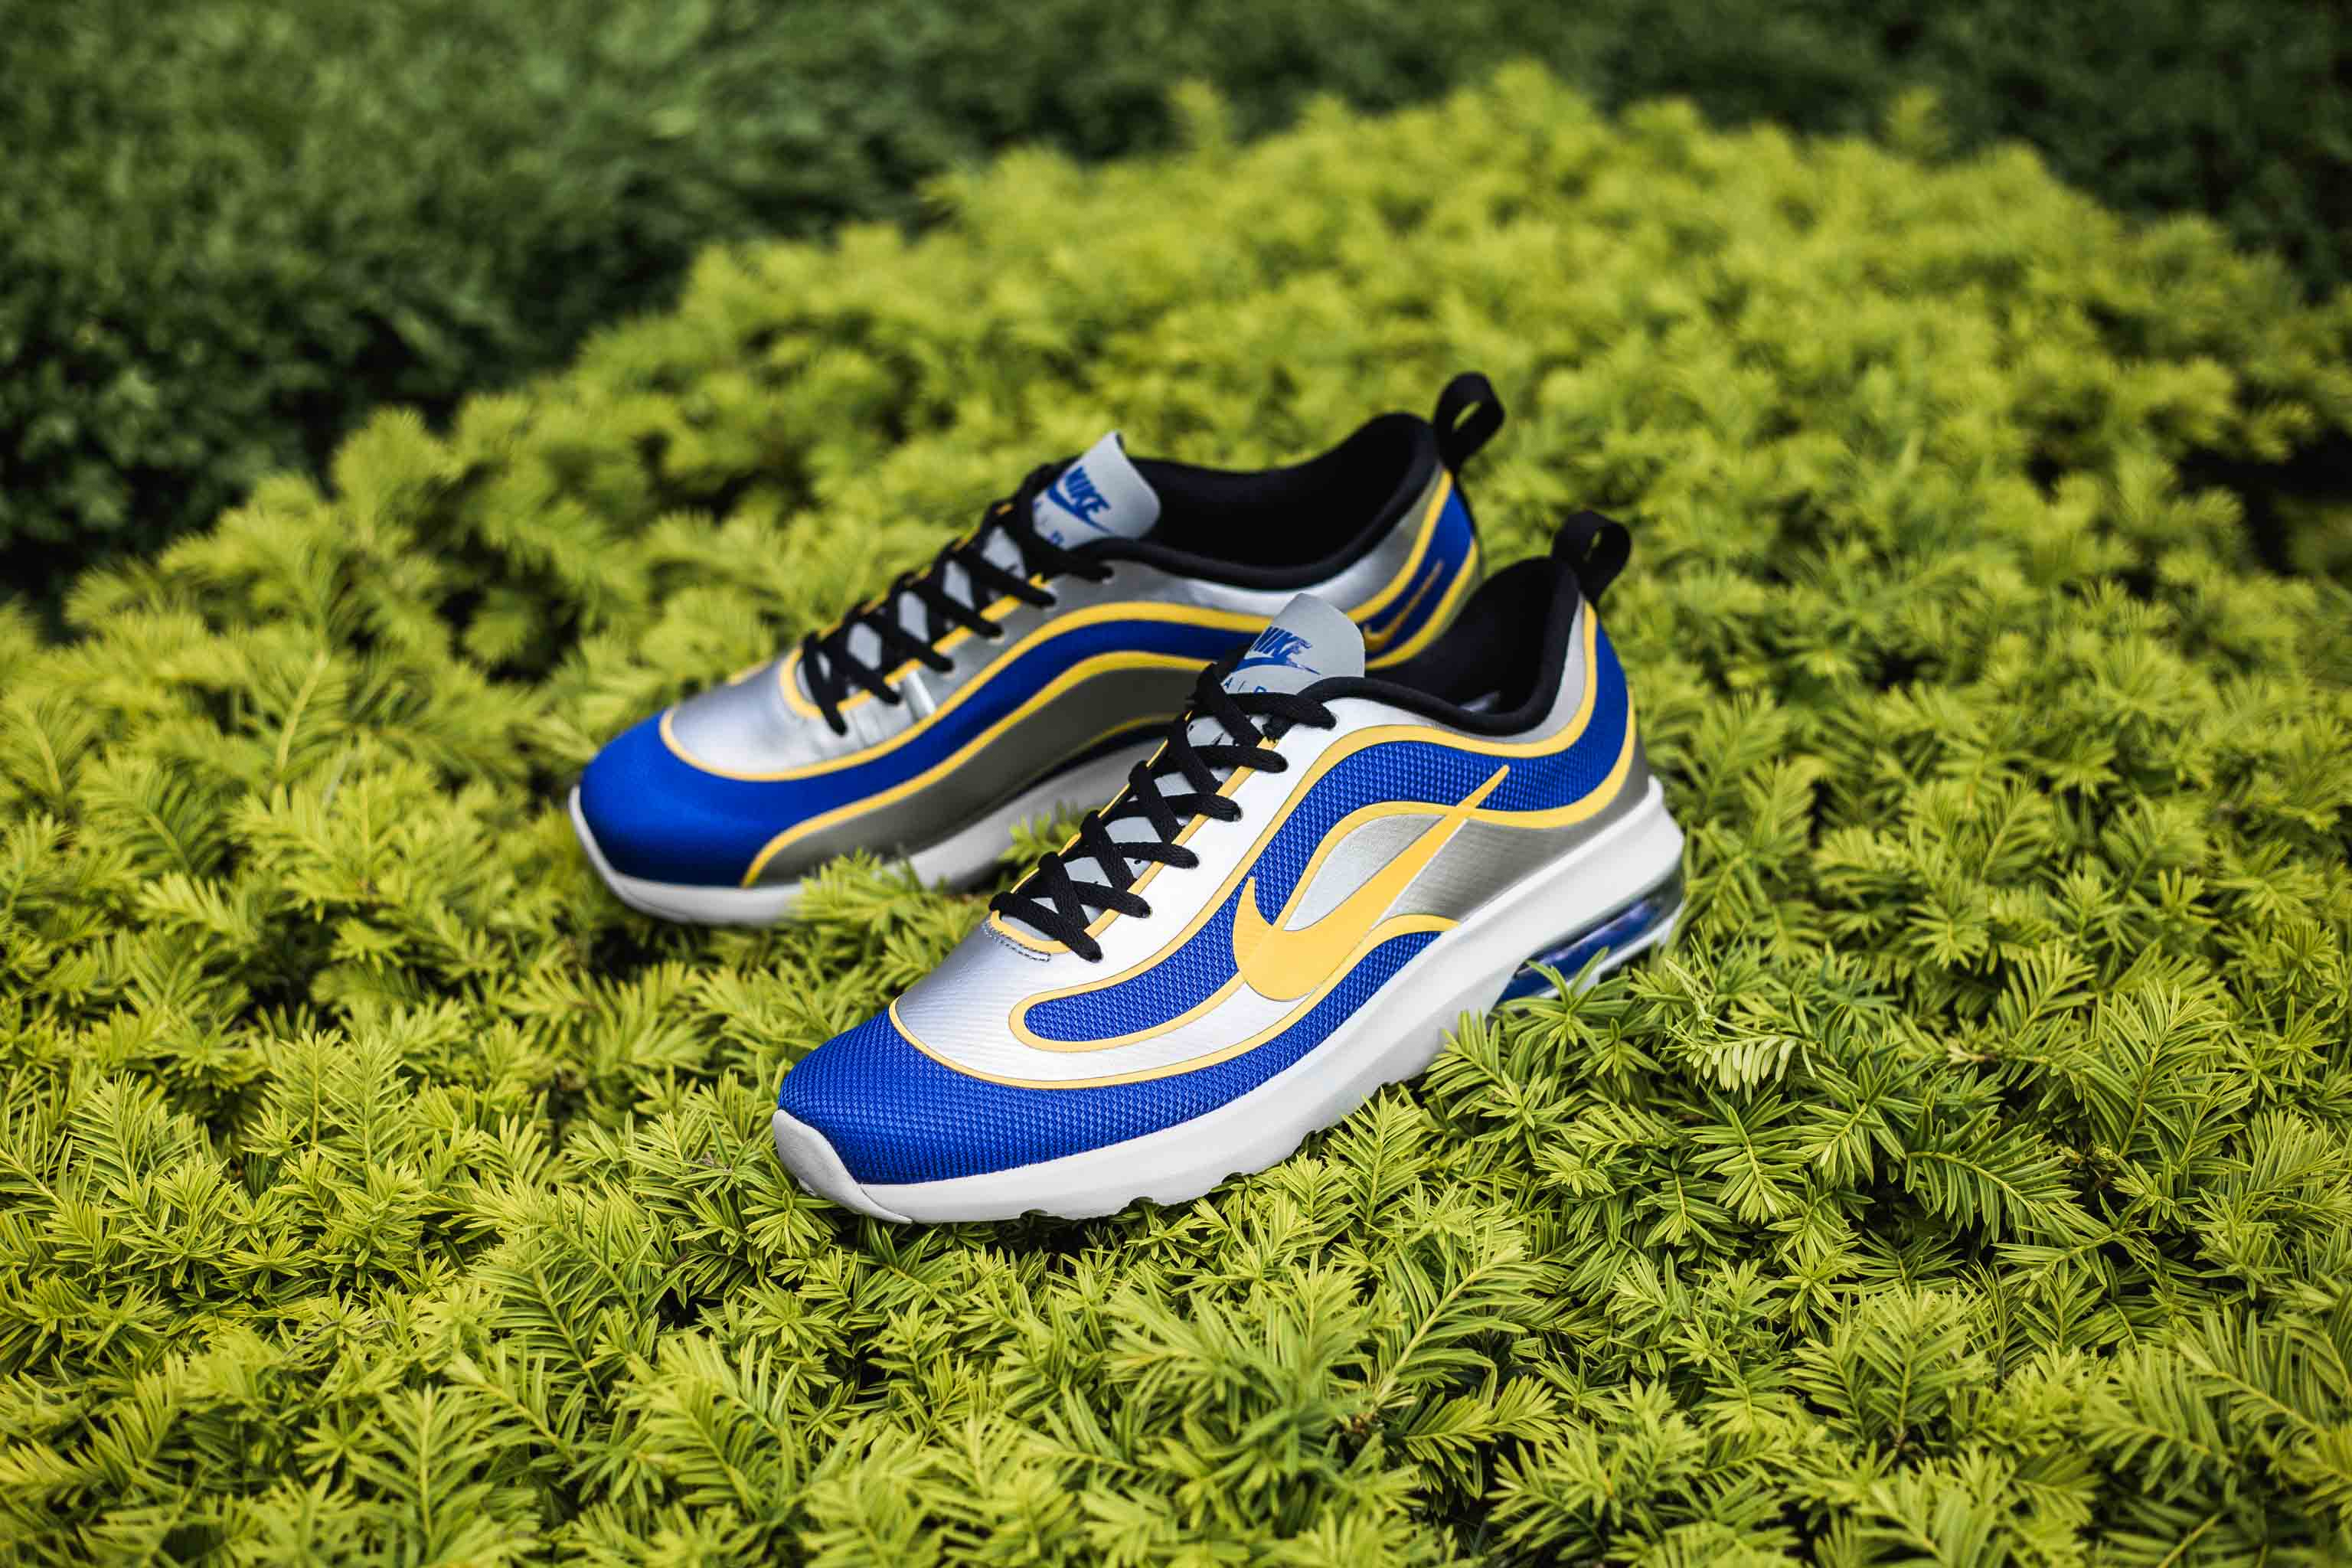 timeless design e8a86 e34e9 Nike Air Max Mercurial  98 QS 06.08.16. Before Ronaldo referred to  Cristiano, a player who didn t need more than a single word for the world  to know who he ...